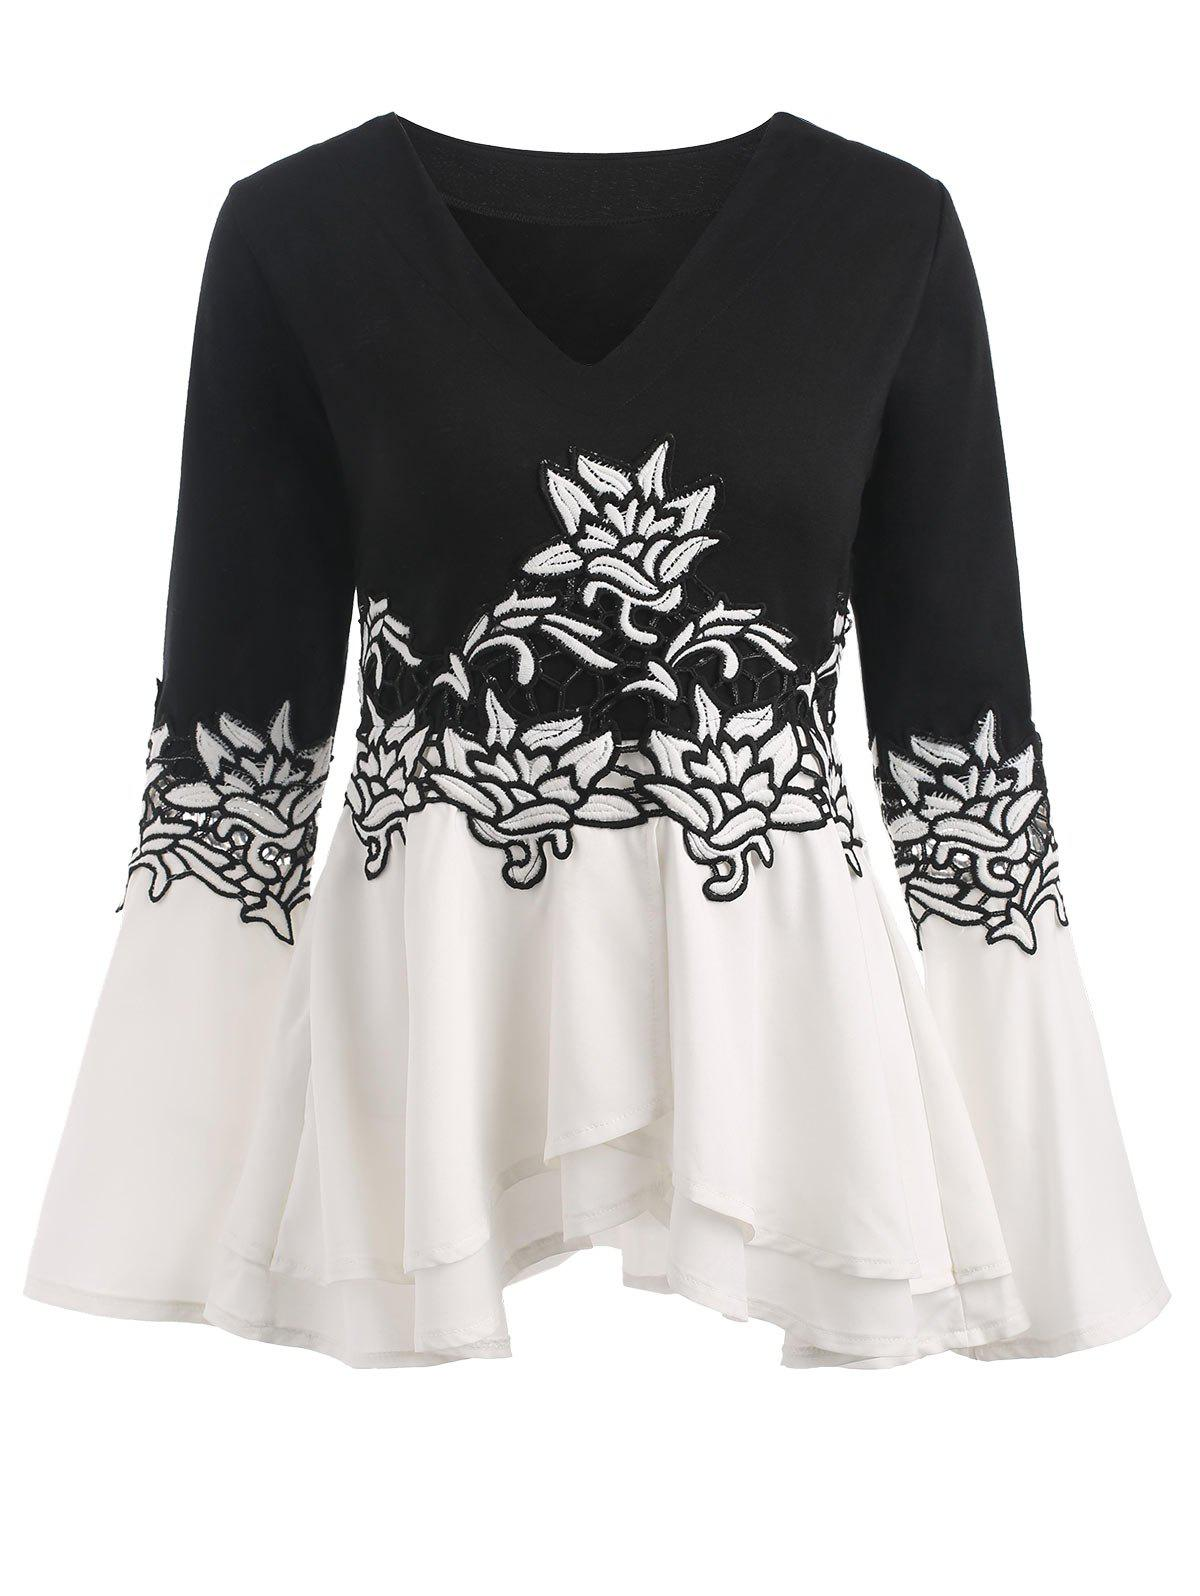 Bell Sleeve Embroidered Peplum T-shirt - WHITE/BLACK 2XL